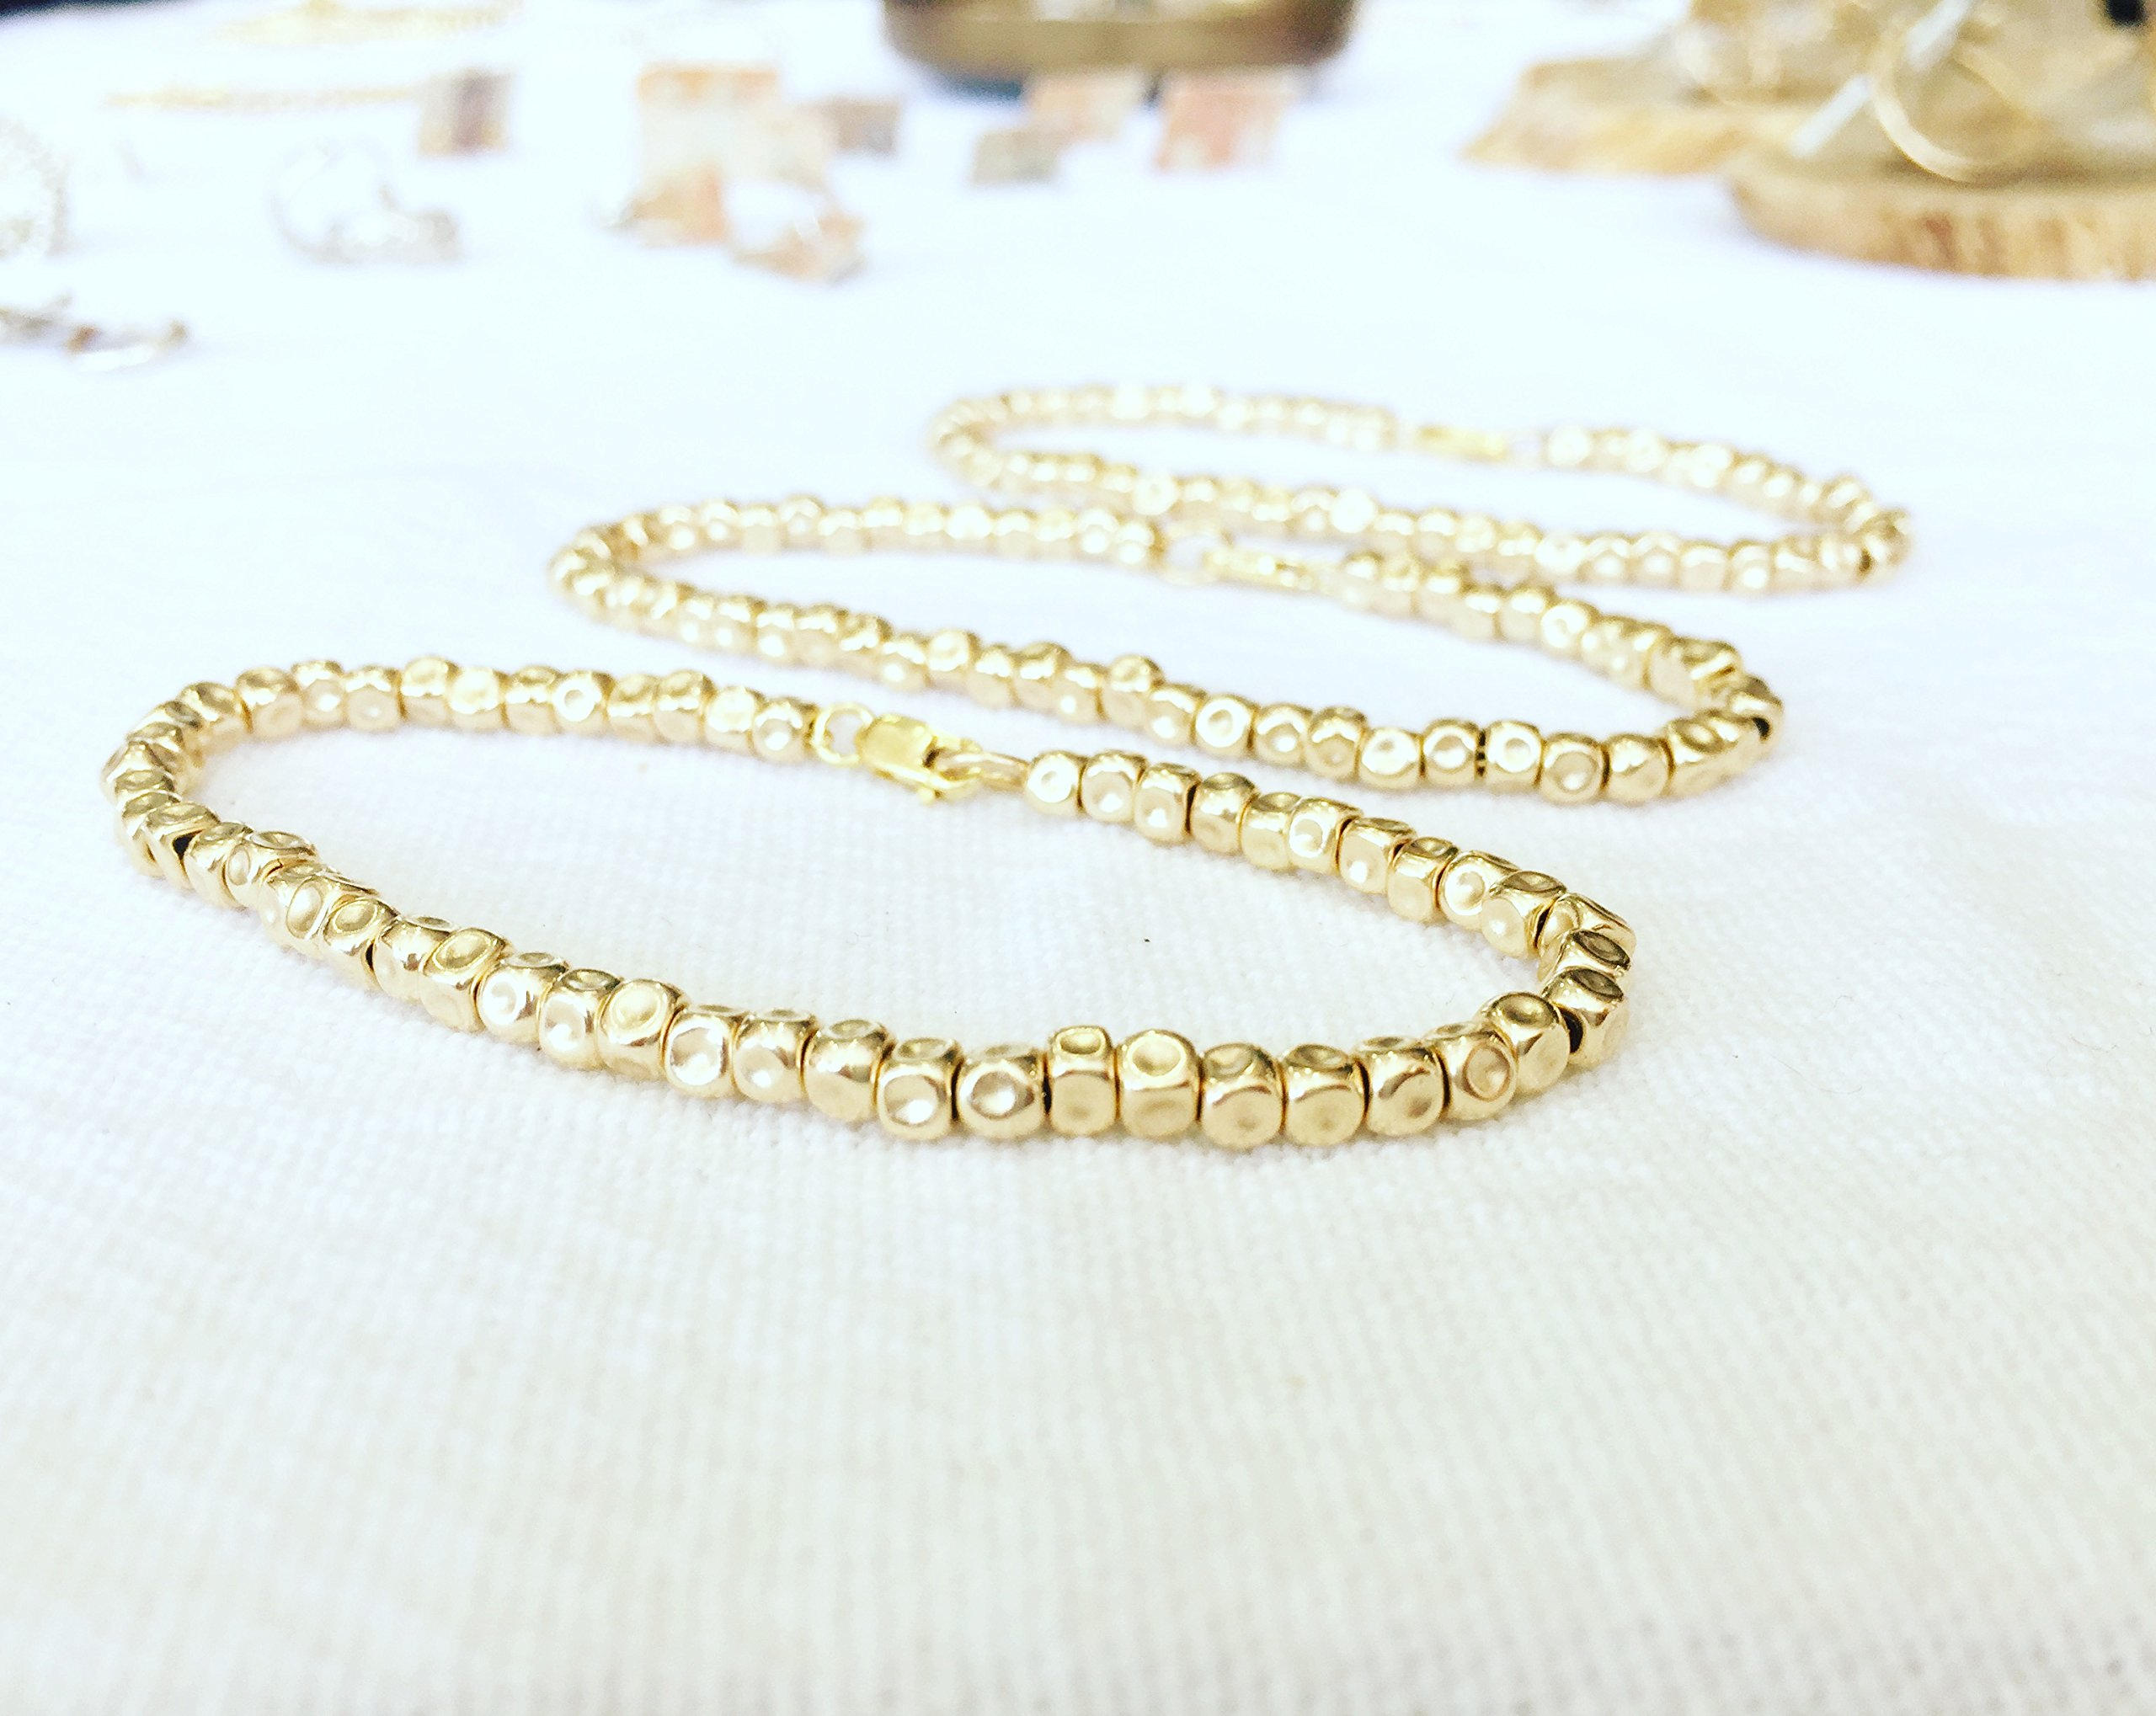 Boho Layered Bracelet Set Of Three Gold Filled Nuggets Or Sterling Silver Bracelets, Unique Artisan Handmade Jewelry